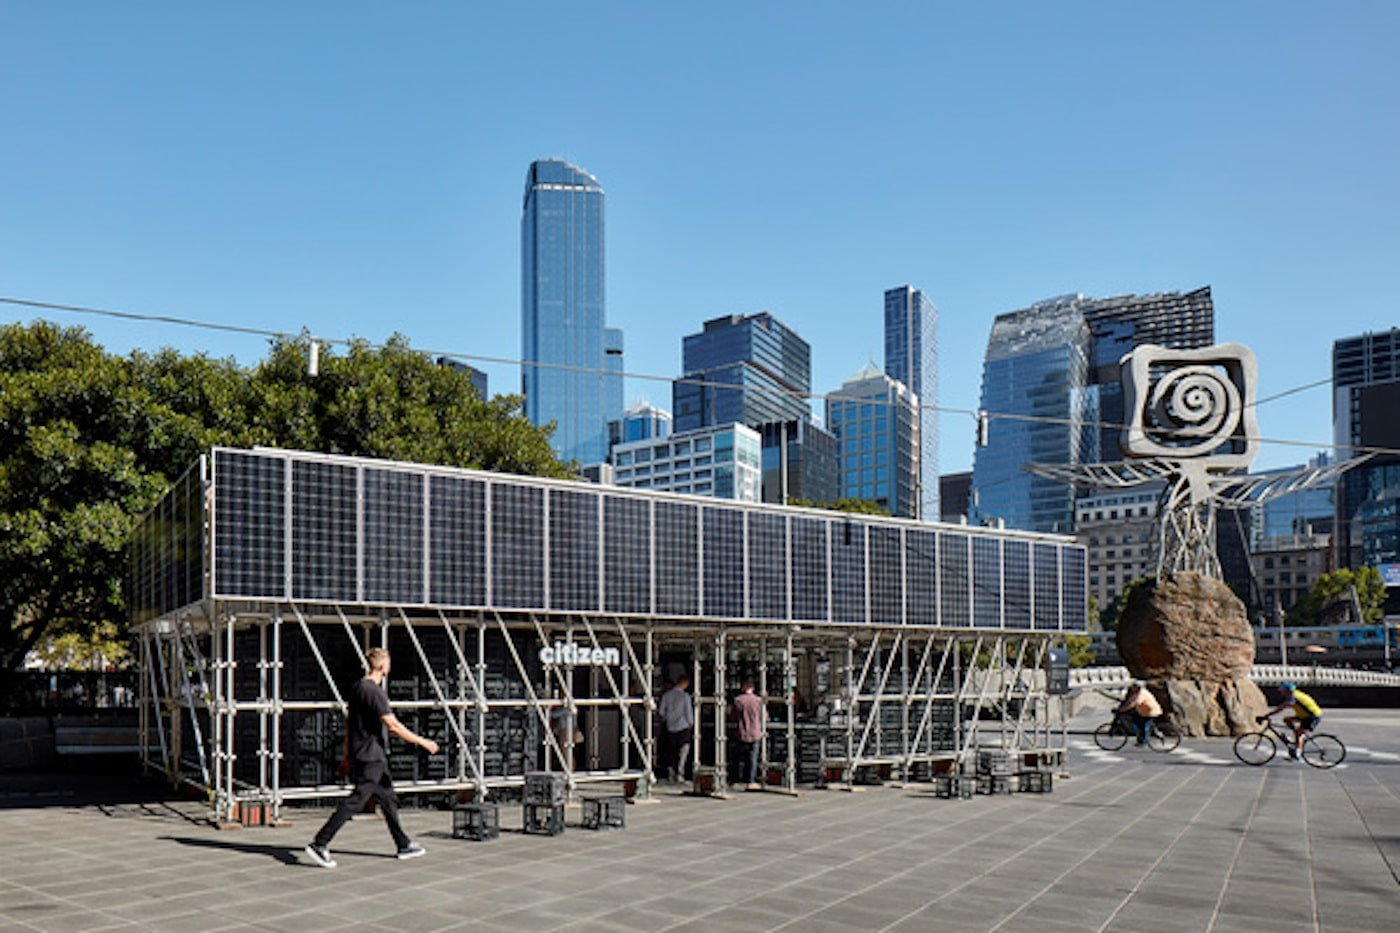 Person walking past pavilion with solar panels on facade